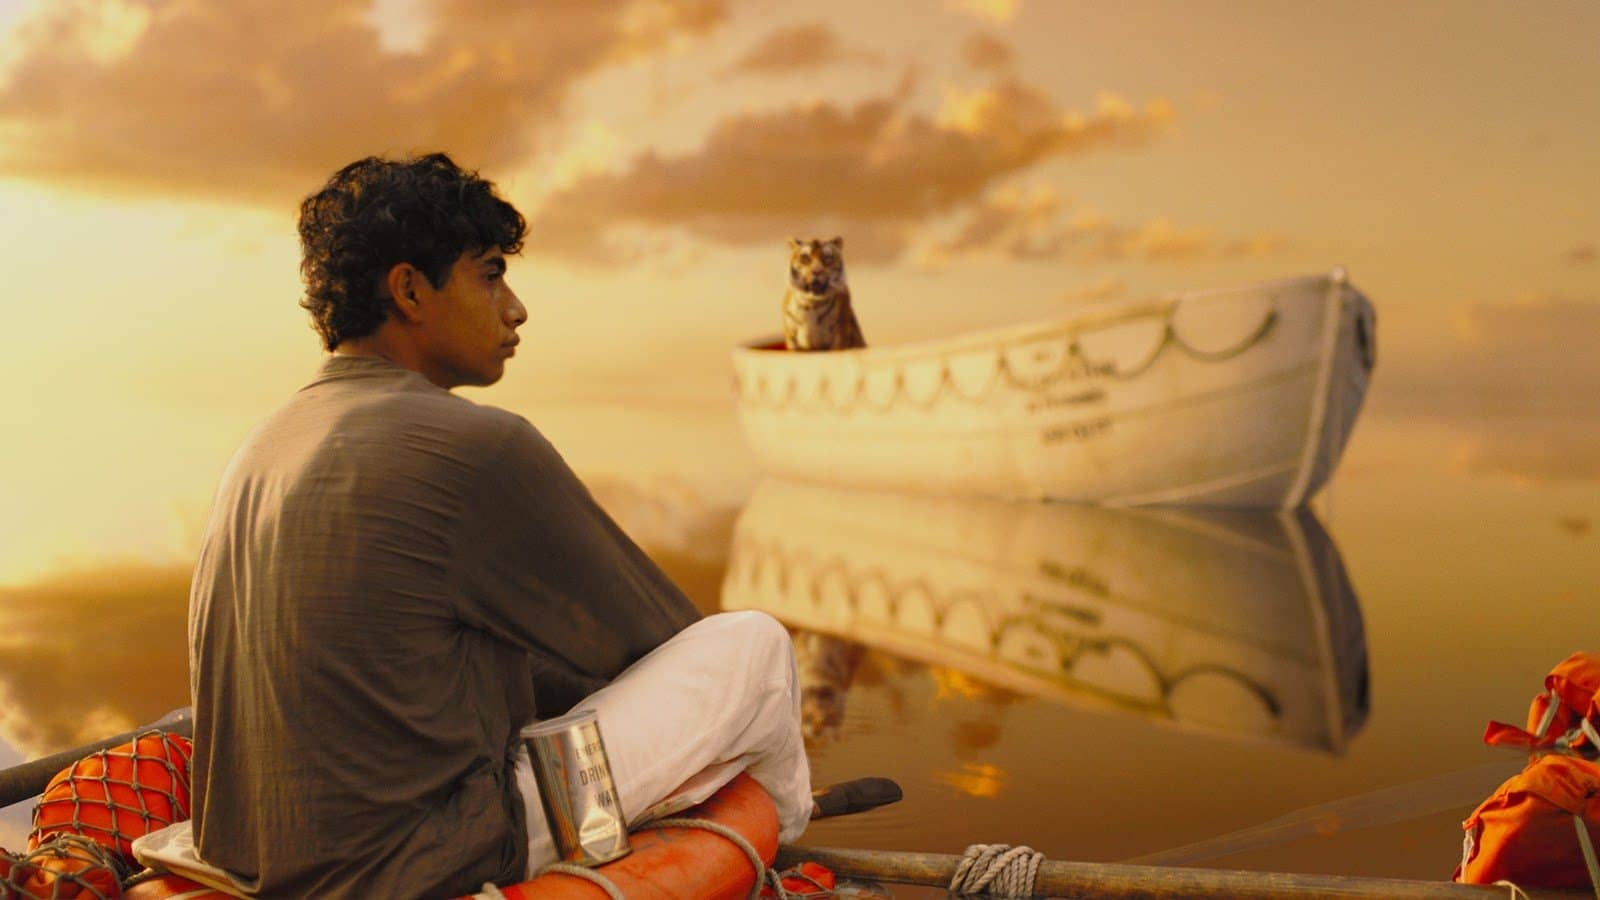 Cena de As Aventuras de Pi (Life of Pi, Ang Lee, 2012)